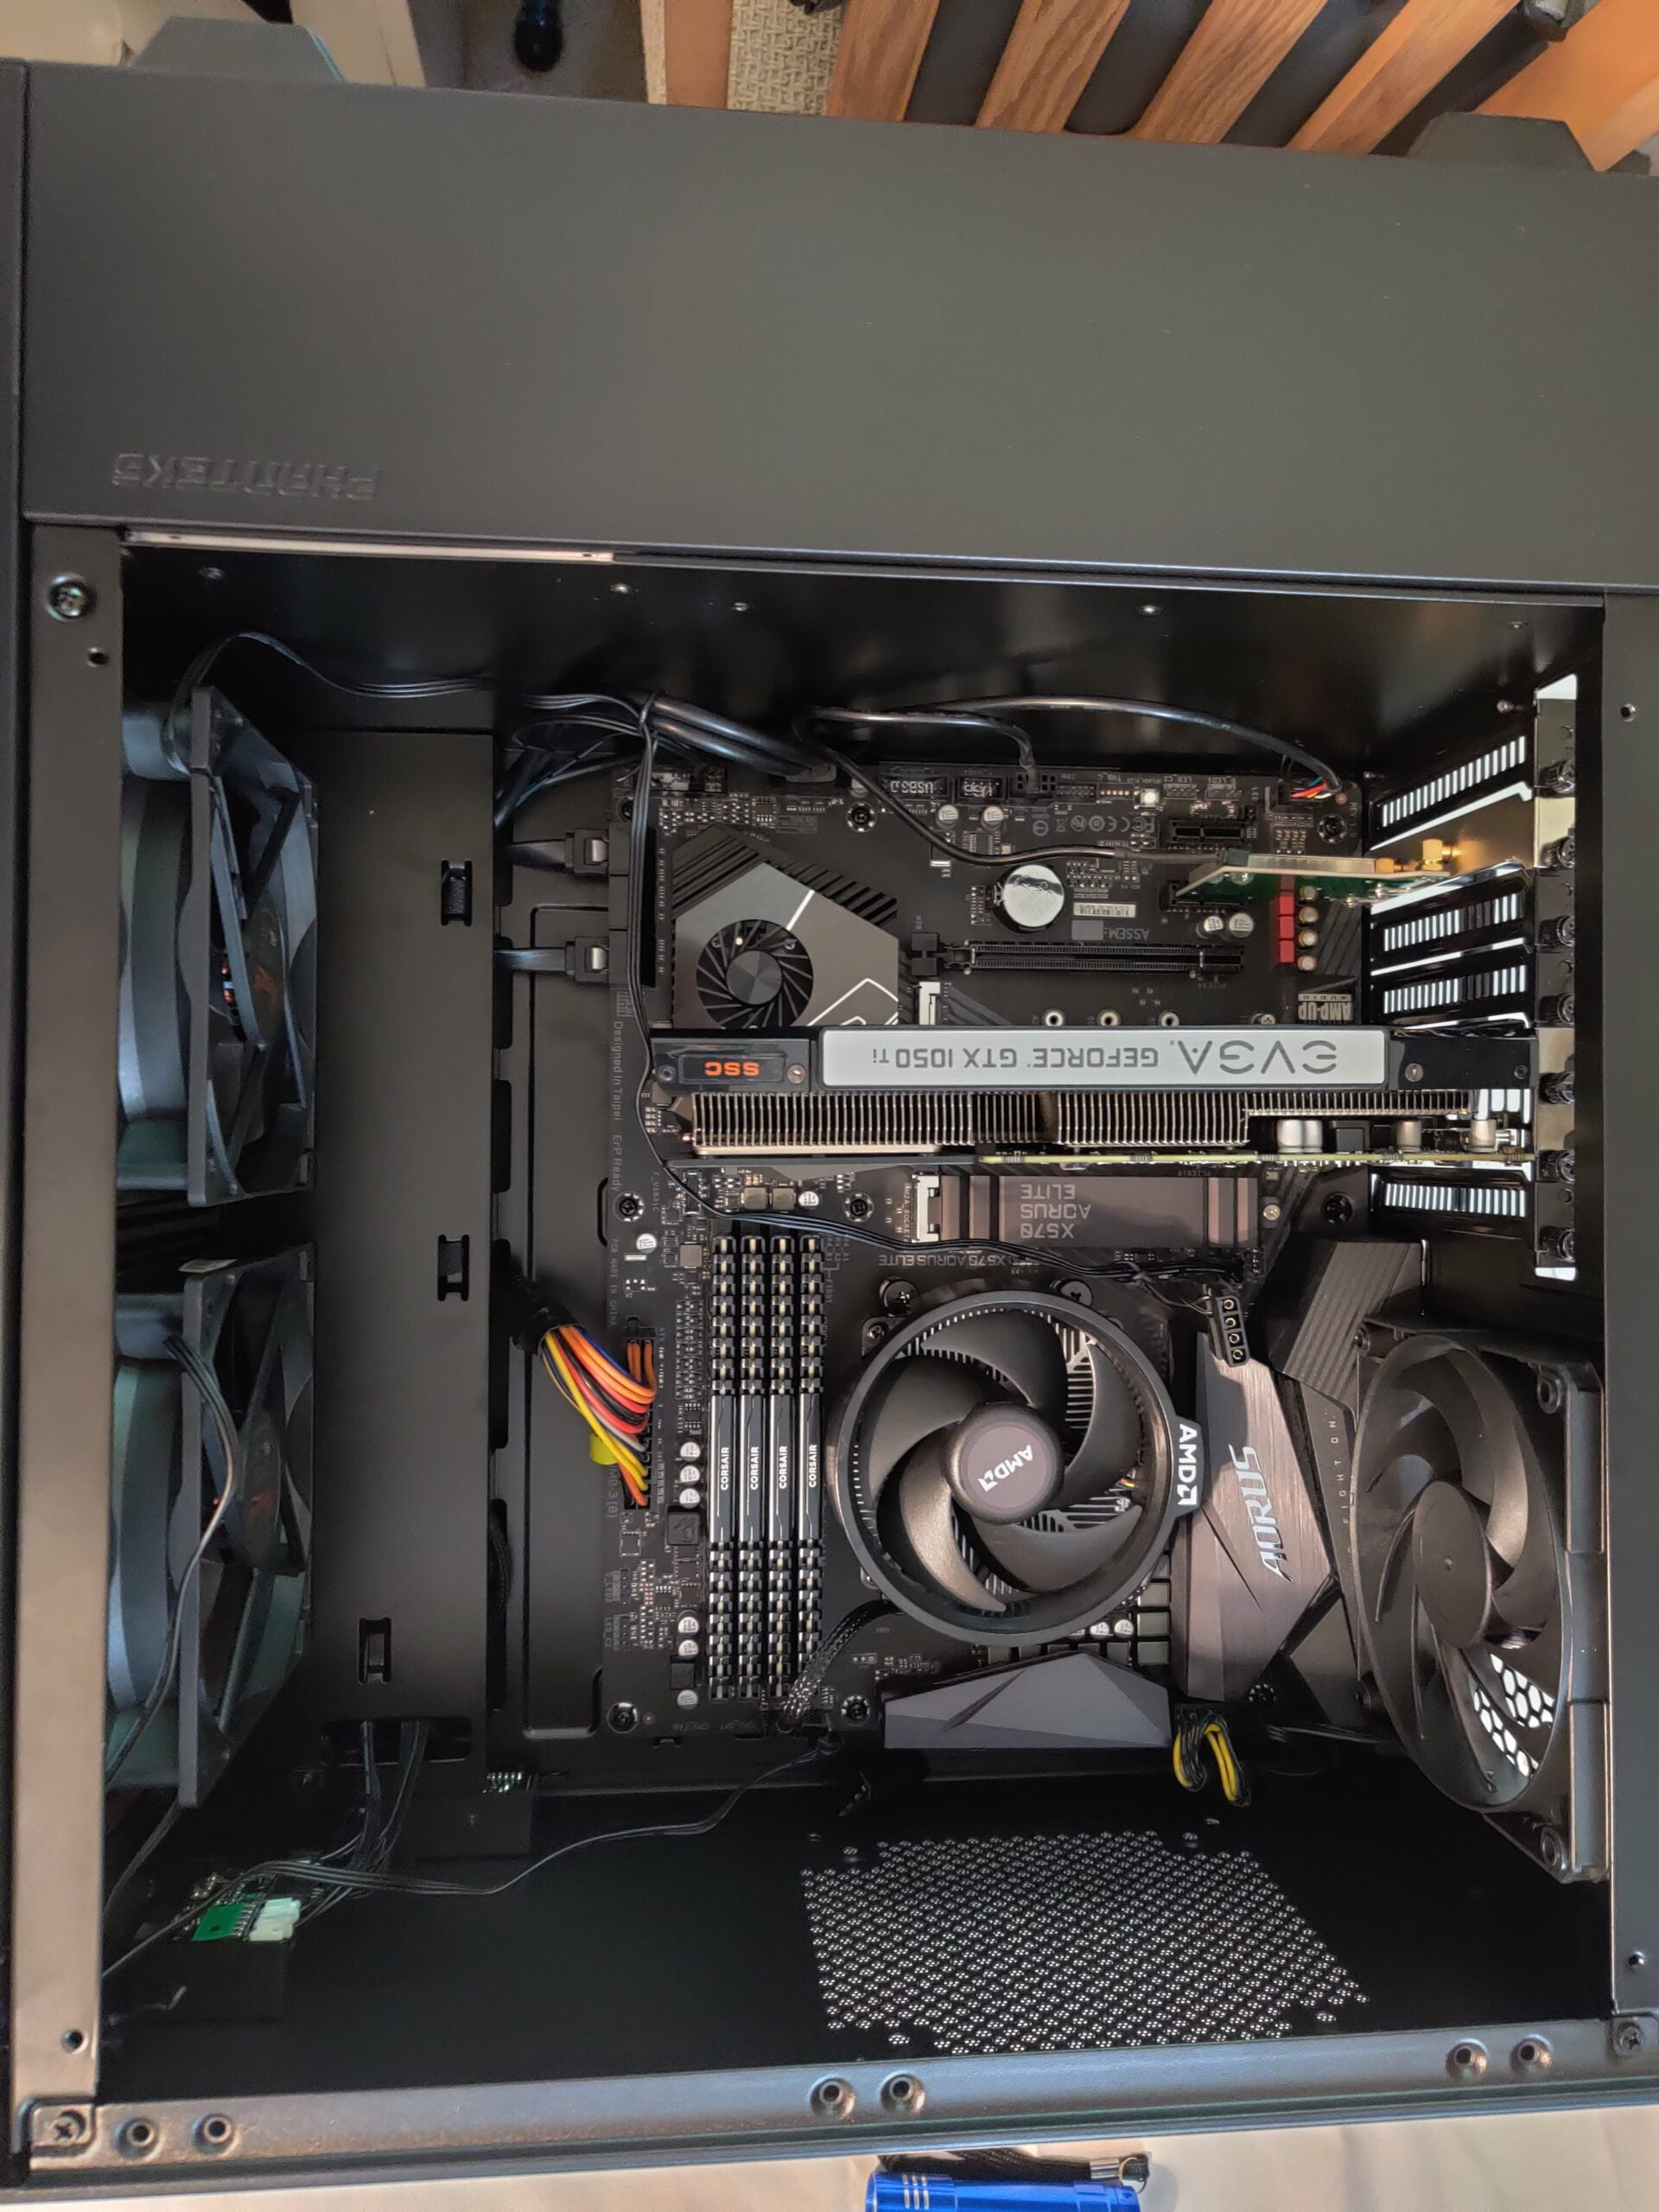 PC Build Project - August 2020